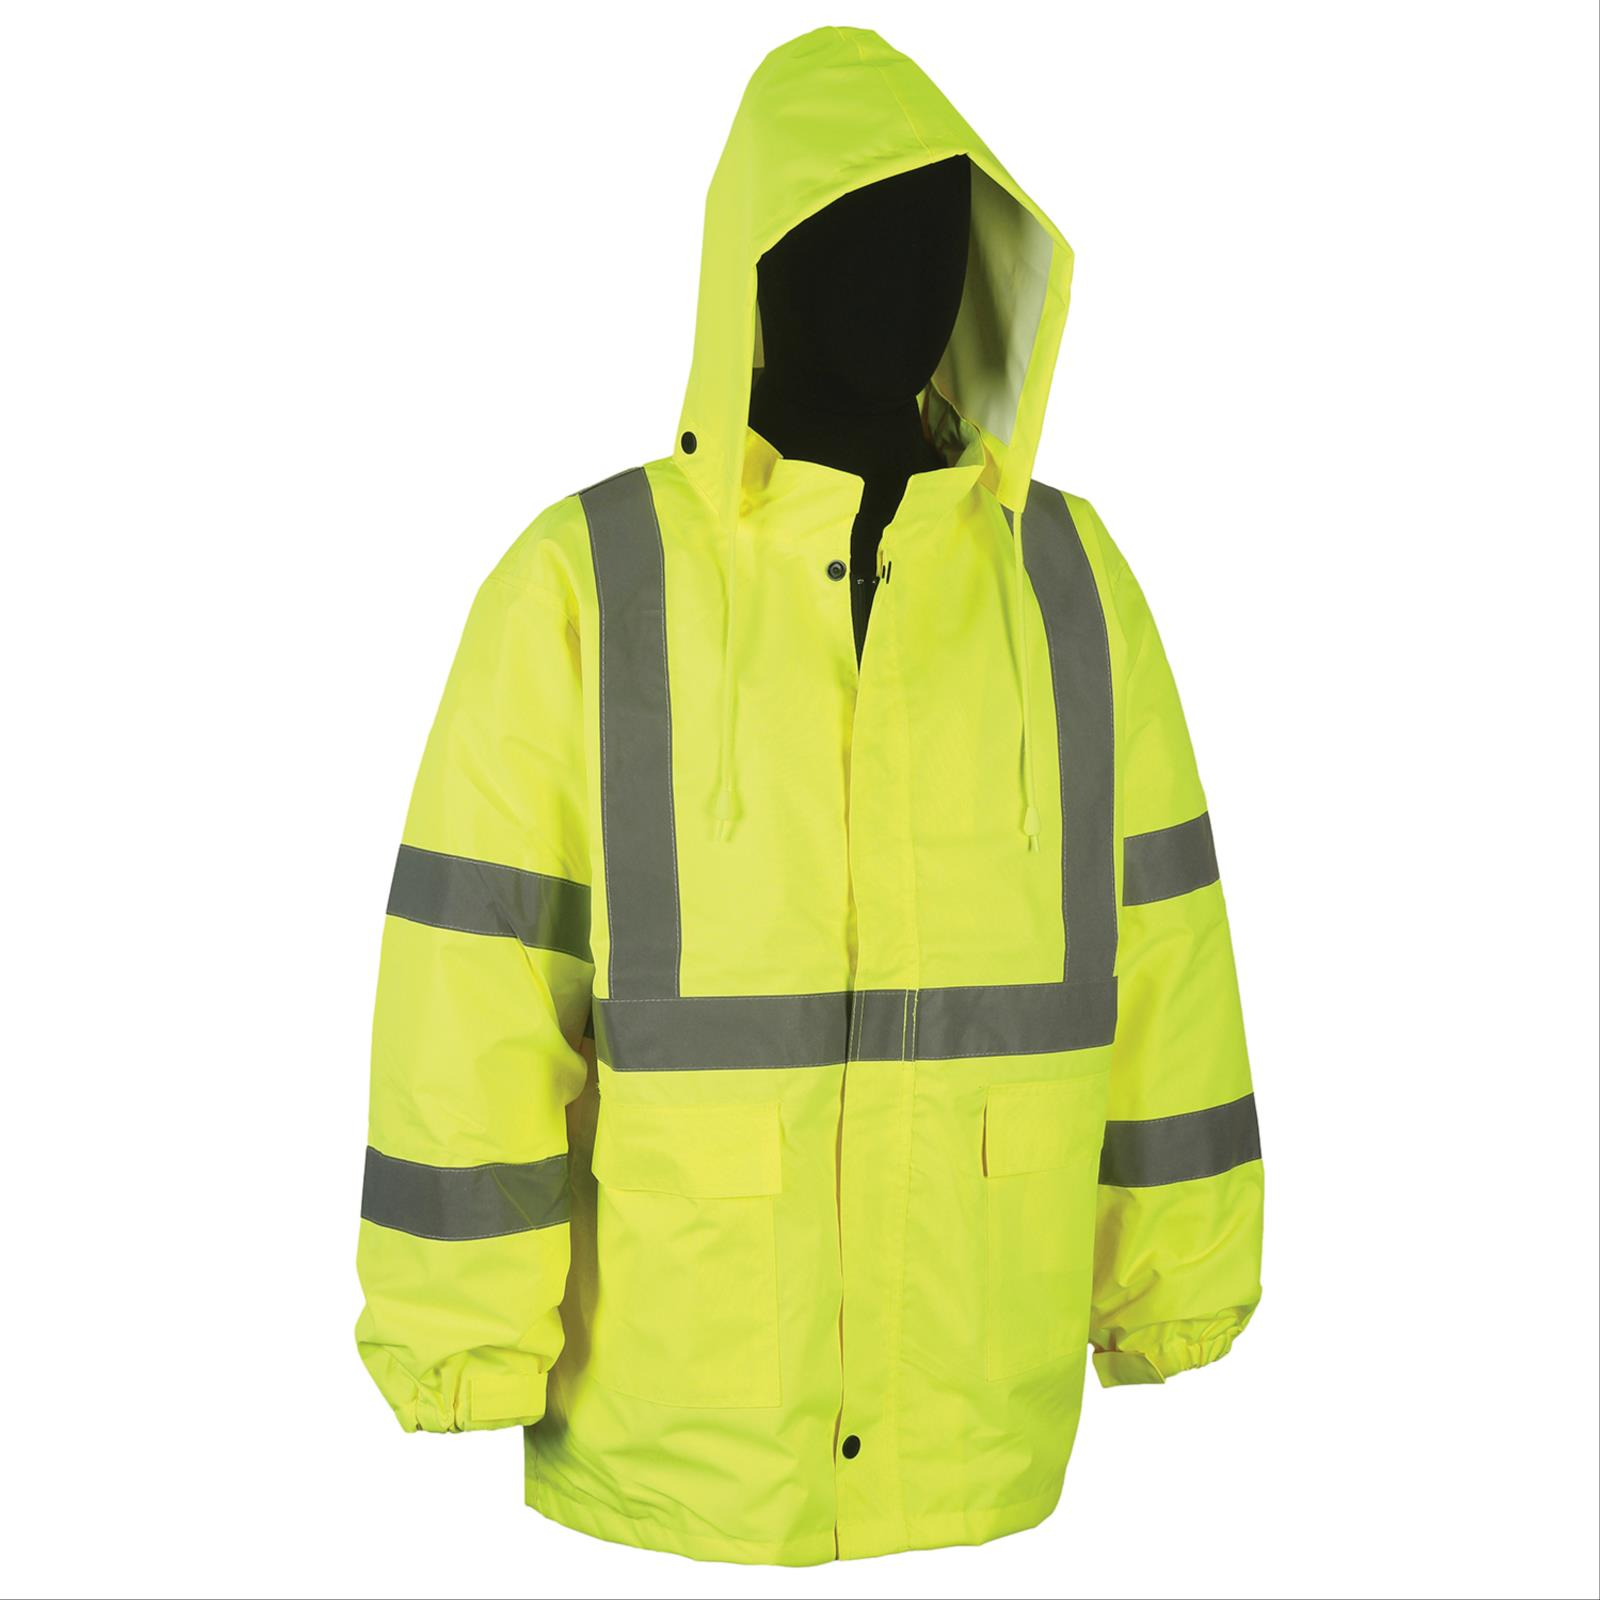 Safety Products Inc - 100% Waterproof Rain Jacket, Class 3 Type R ...